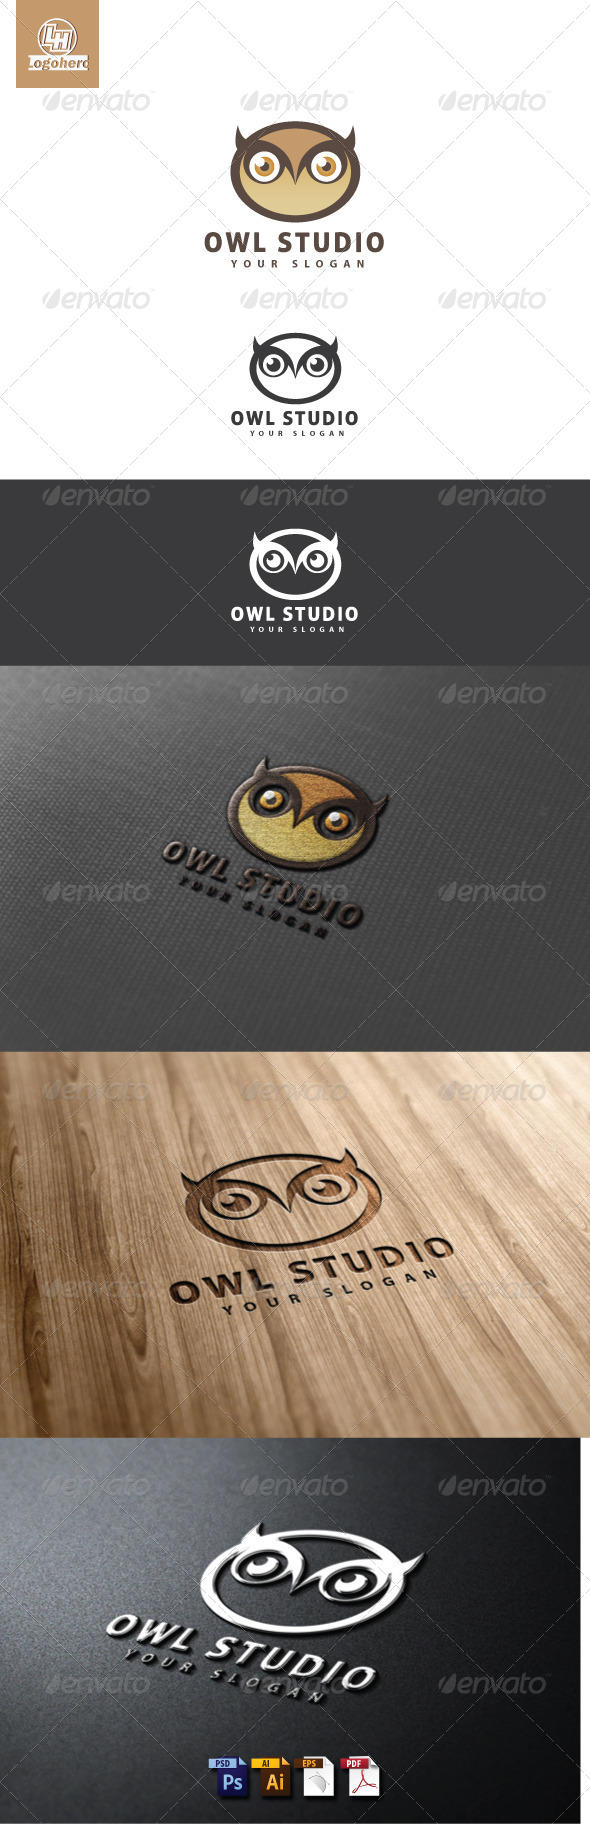 Owl Studio Logo Template - Animals Logo Templates